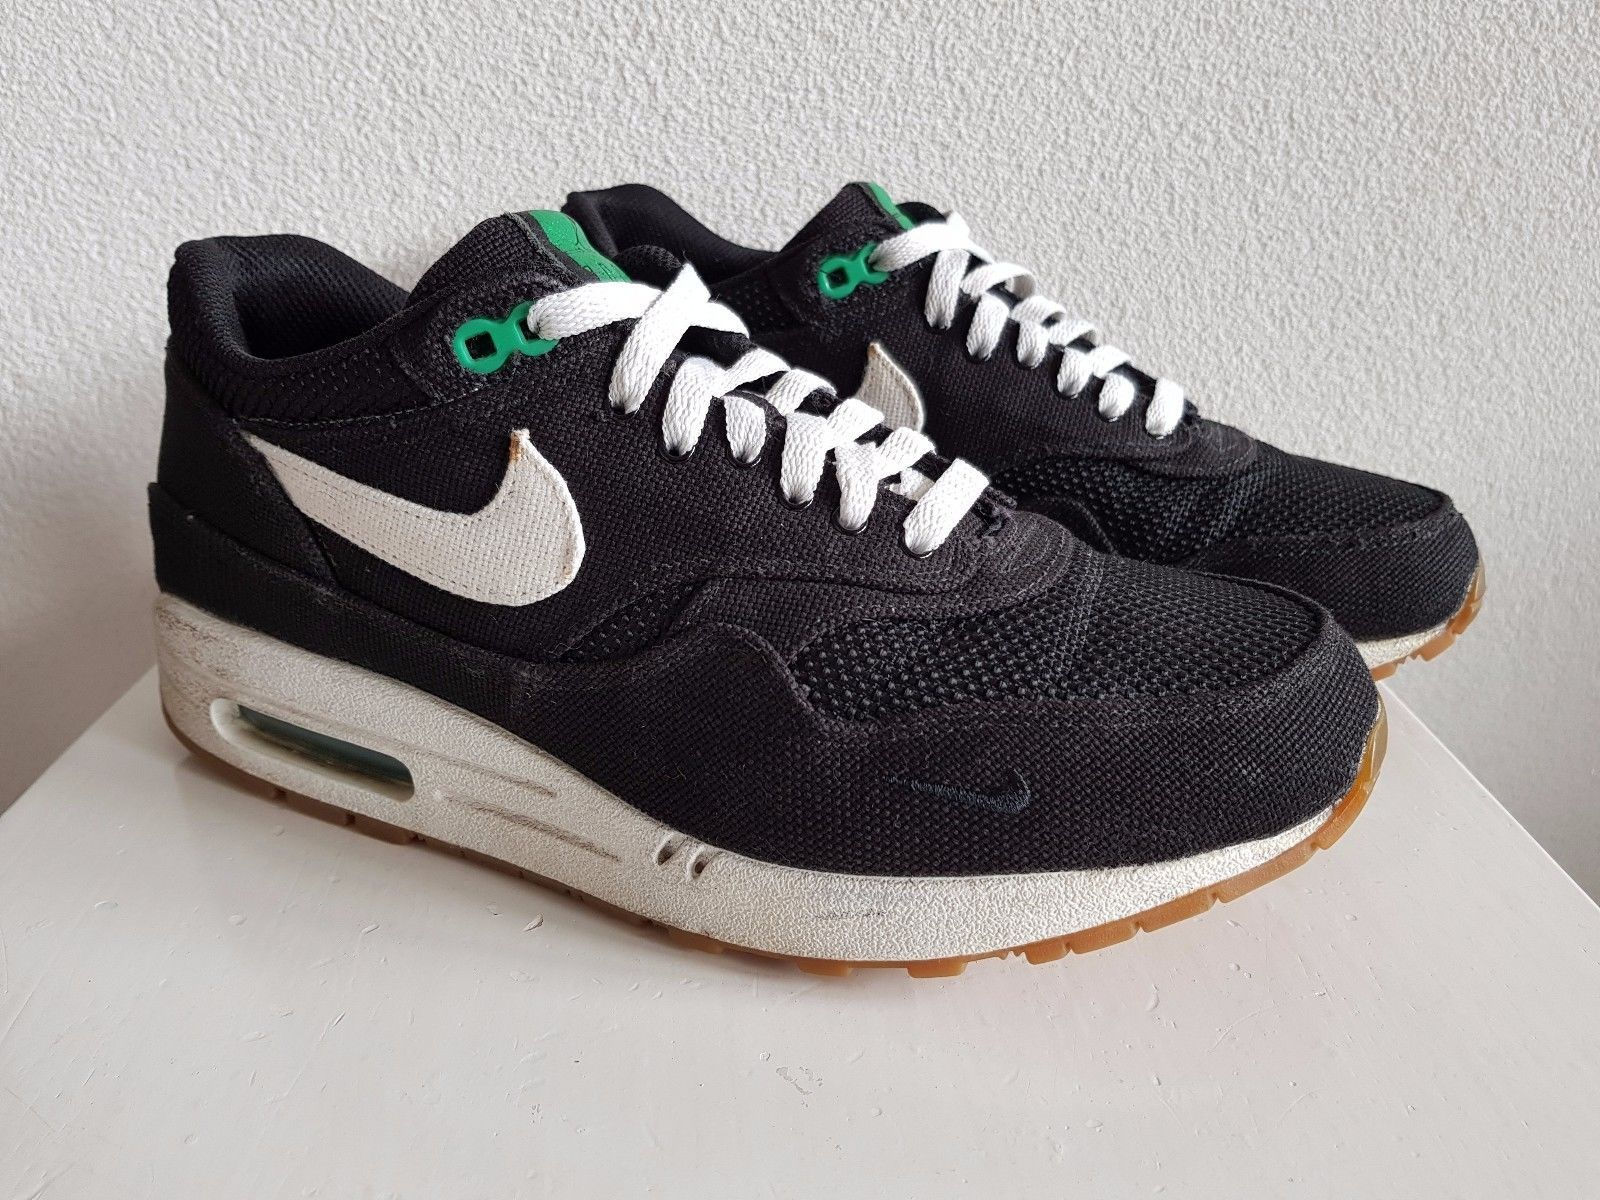 ... ads sneaker 91c97 2bb7a Nike AIR MAX 98 SUPREME 9 10 OBSIDIAN  REFLECTIVE SILVER WHITE navy ...